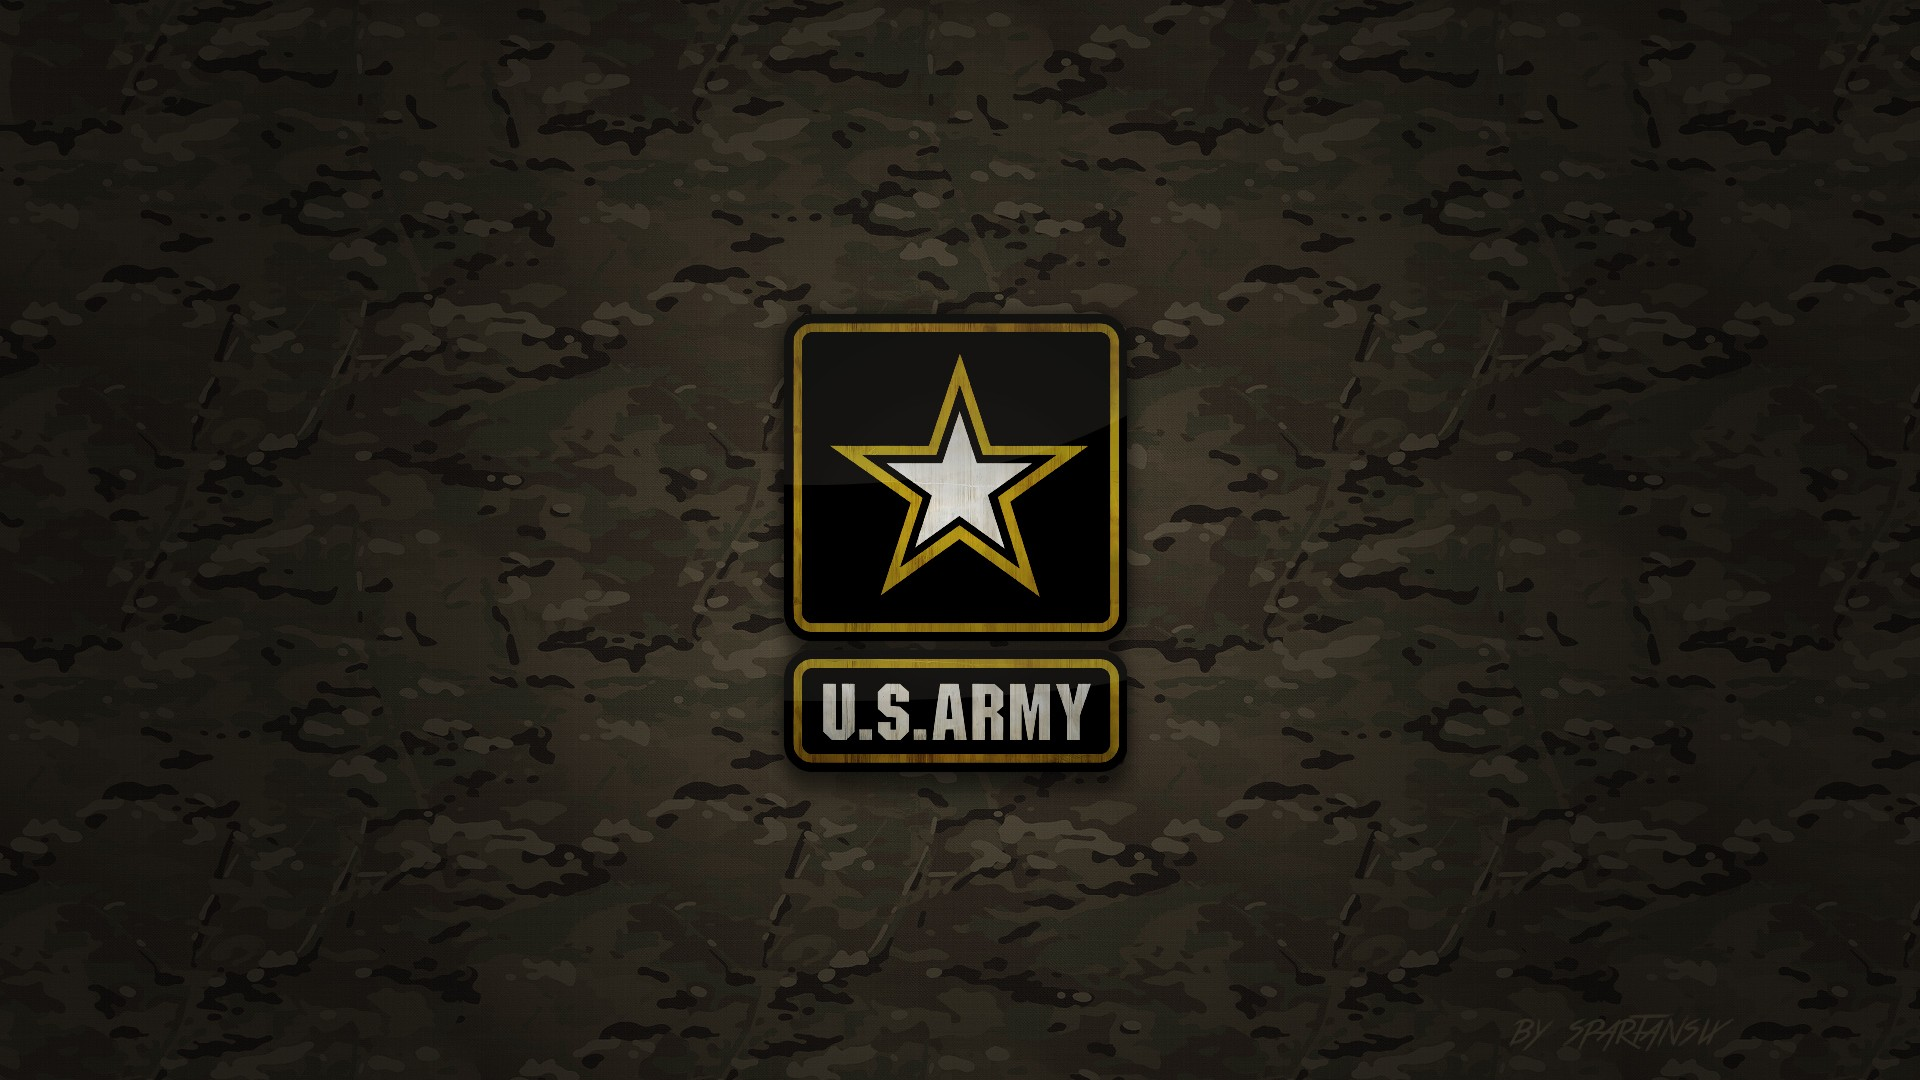 army wallpaper ·① download free high resolution backgrounds for